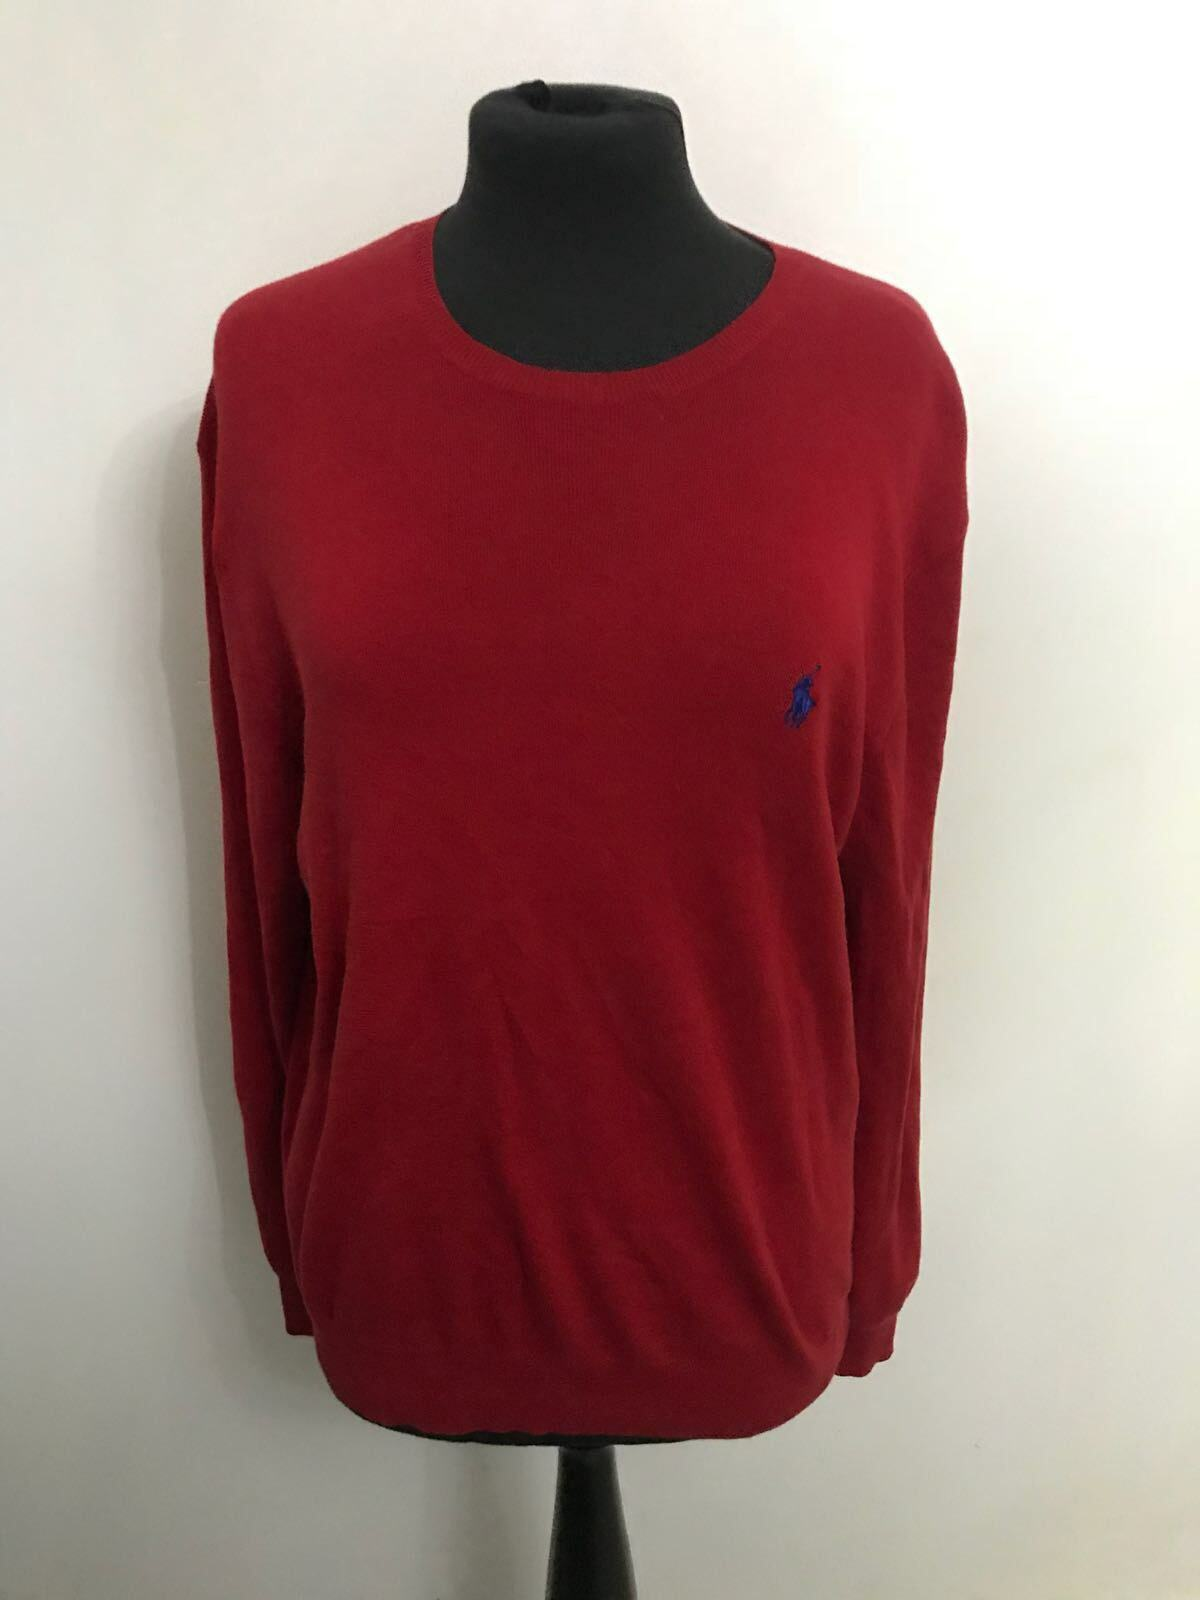 Mens ralph lauren red jumper size m bnwot